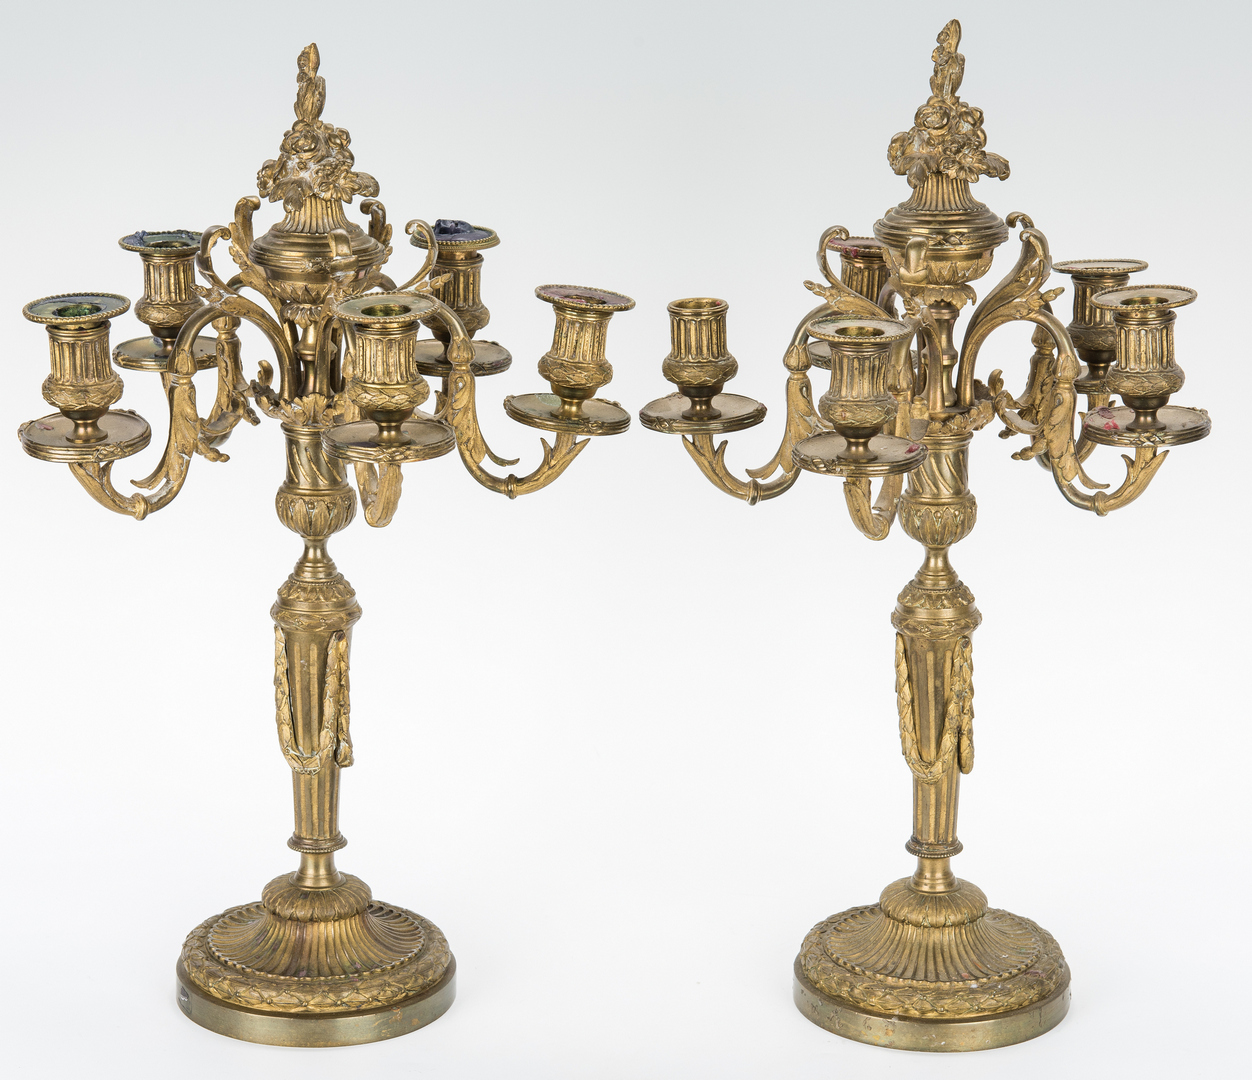 Lot 312: Pr. Neoclassical Style Gilt Bronze Candelabra